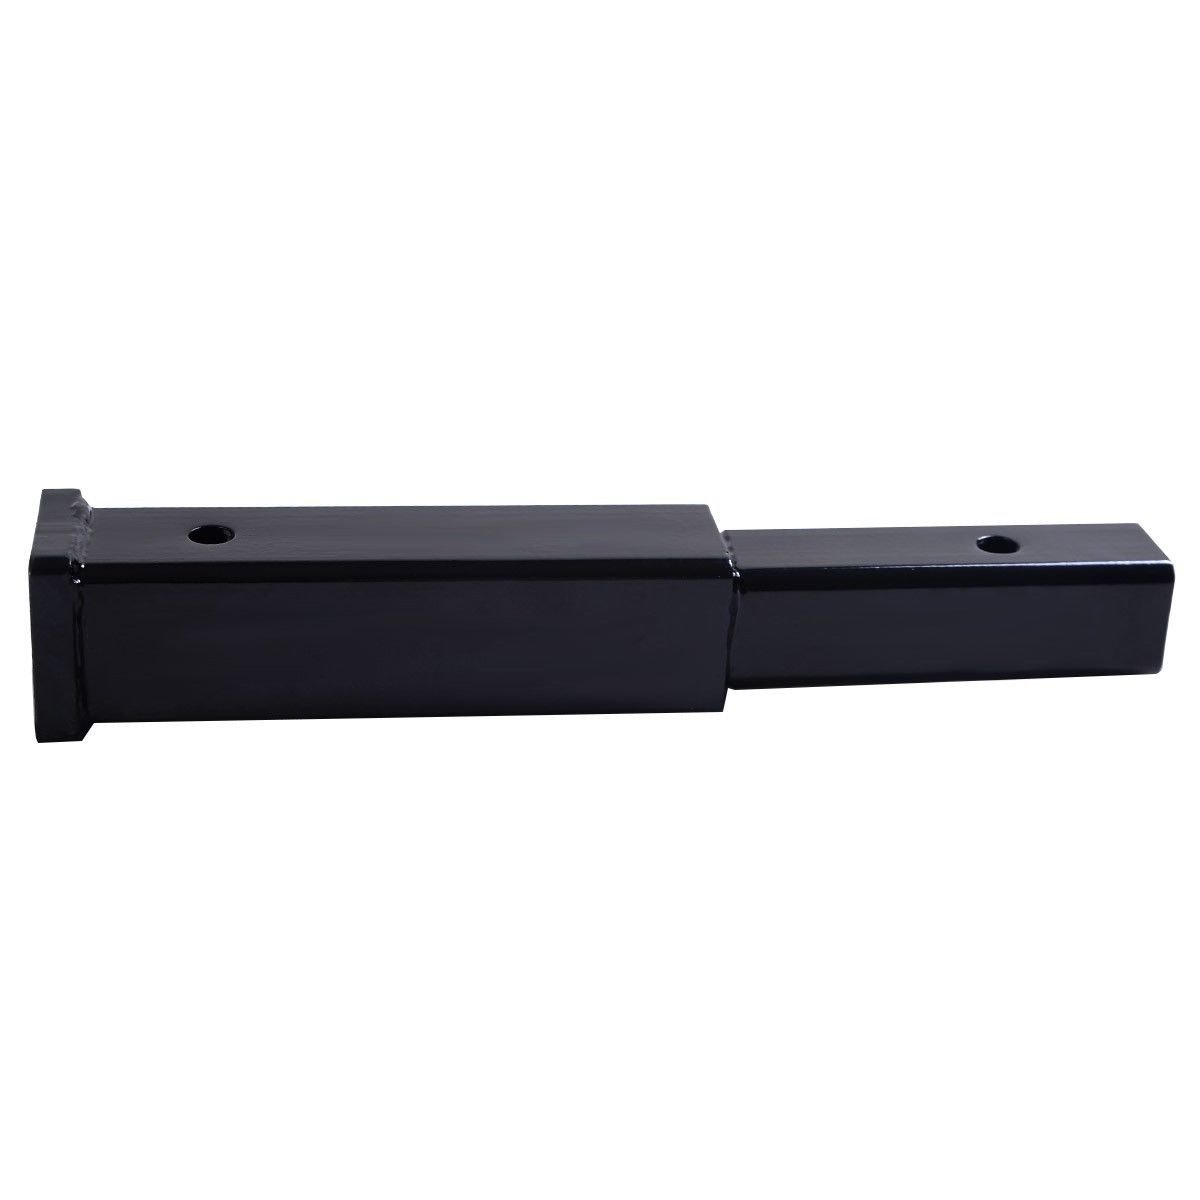 Goplus 18 Hitch Extension Receiver 2 Extender 5//8 Pin Hole 4000 LBS Capacity New 18